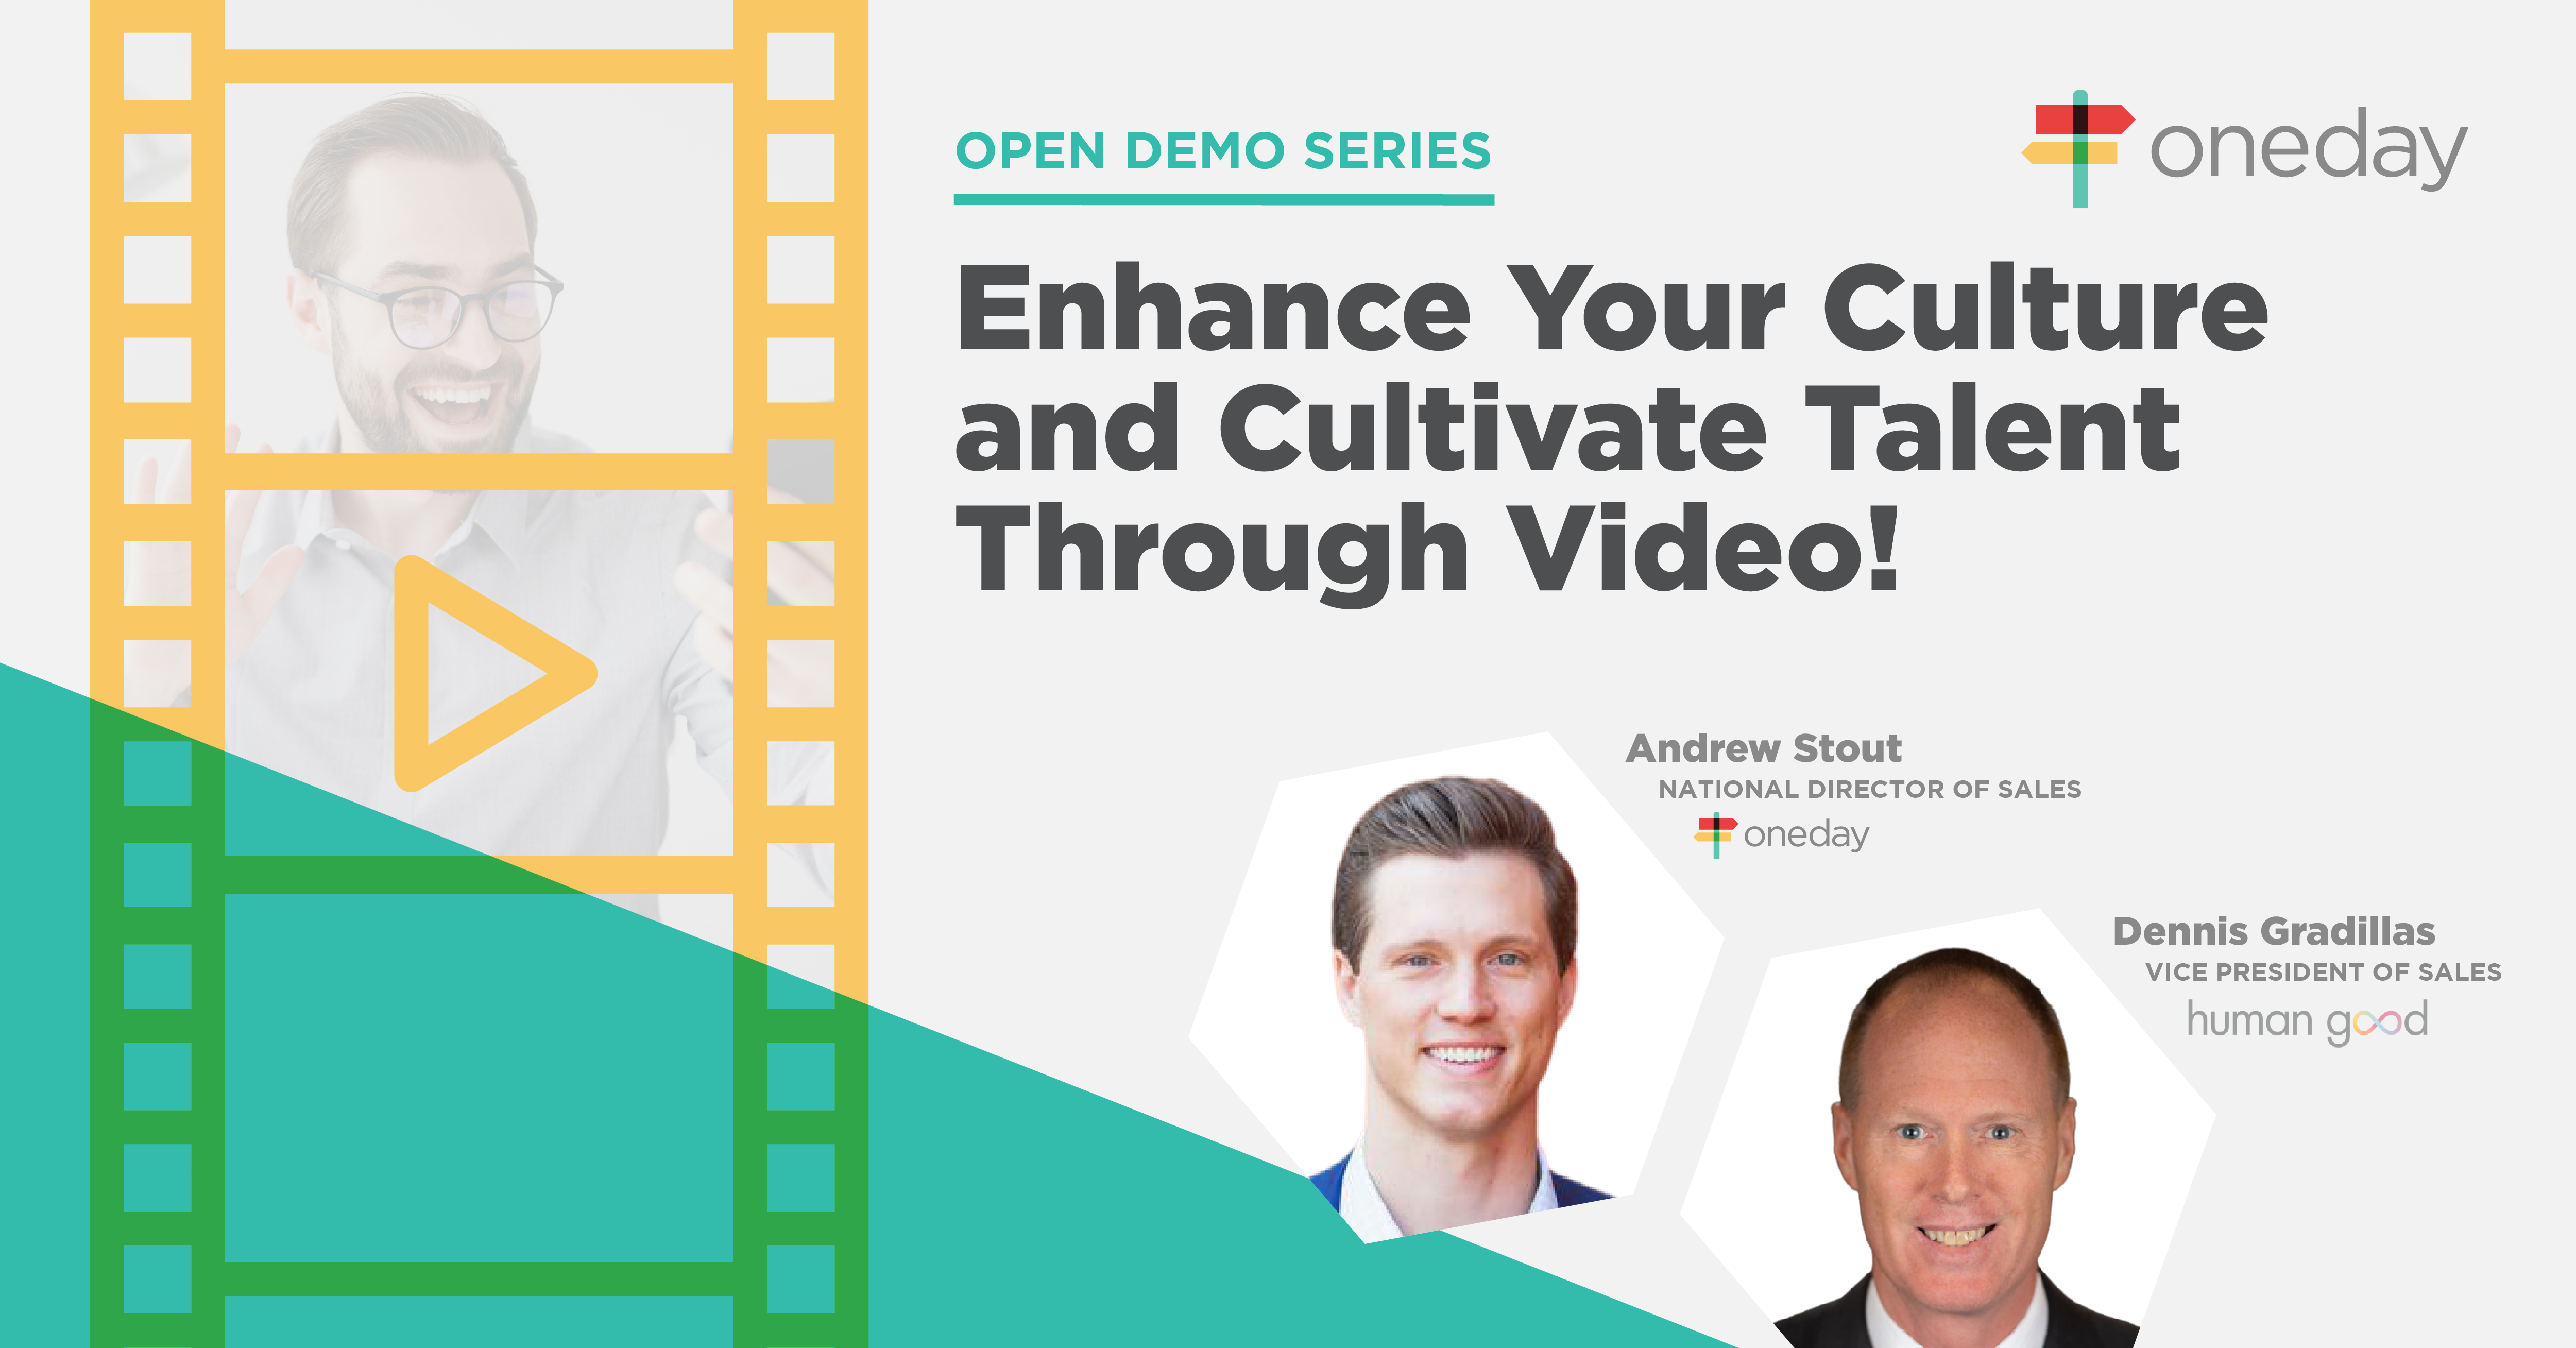 Enhance Your Culture and Cultivate Talent Through Video!